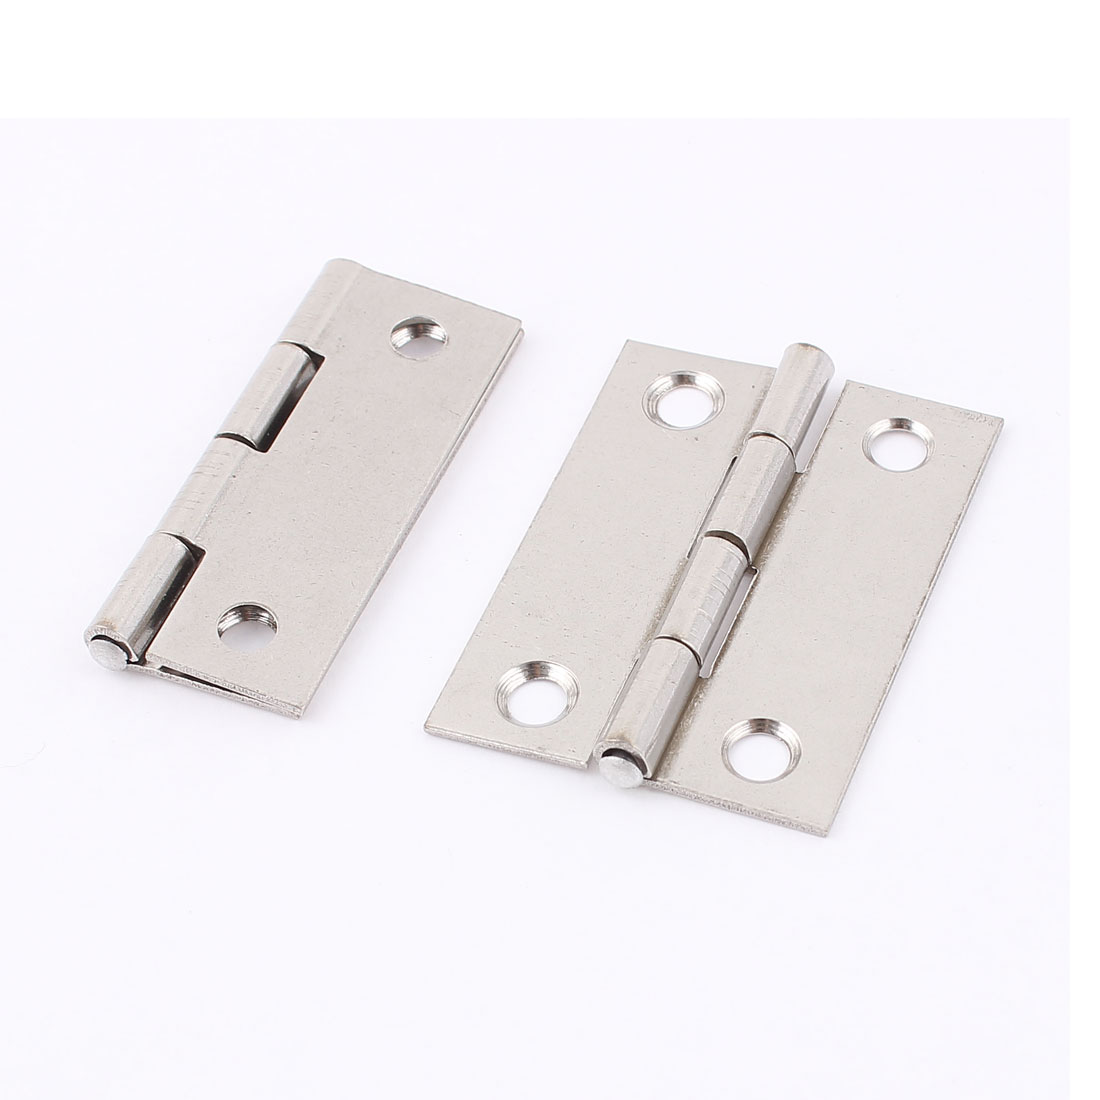 Furniture Door Cupboard Cabinet Screws Mounted Rotating Butt Hinge 2 Pcs